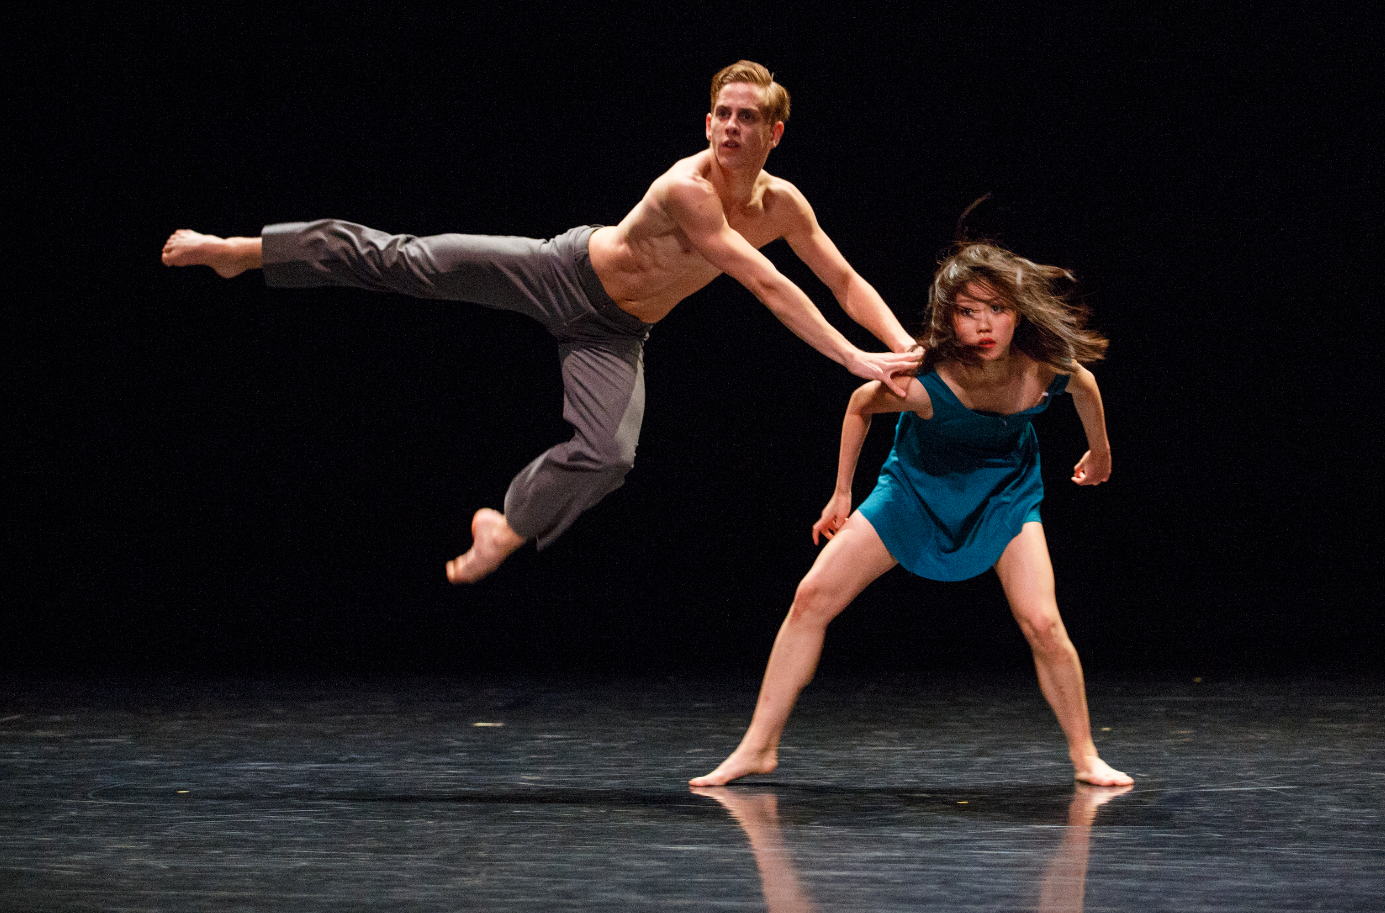 Students perform as part of the 2014 Stephen Godfrey Choreographic Workshop.